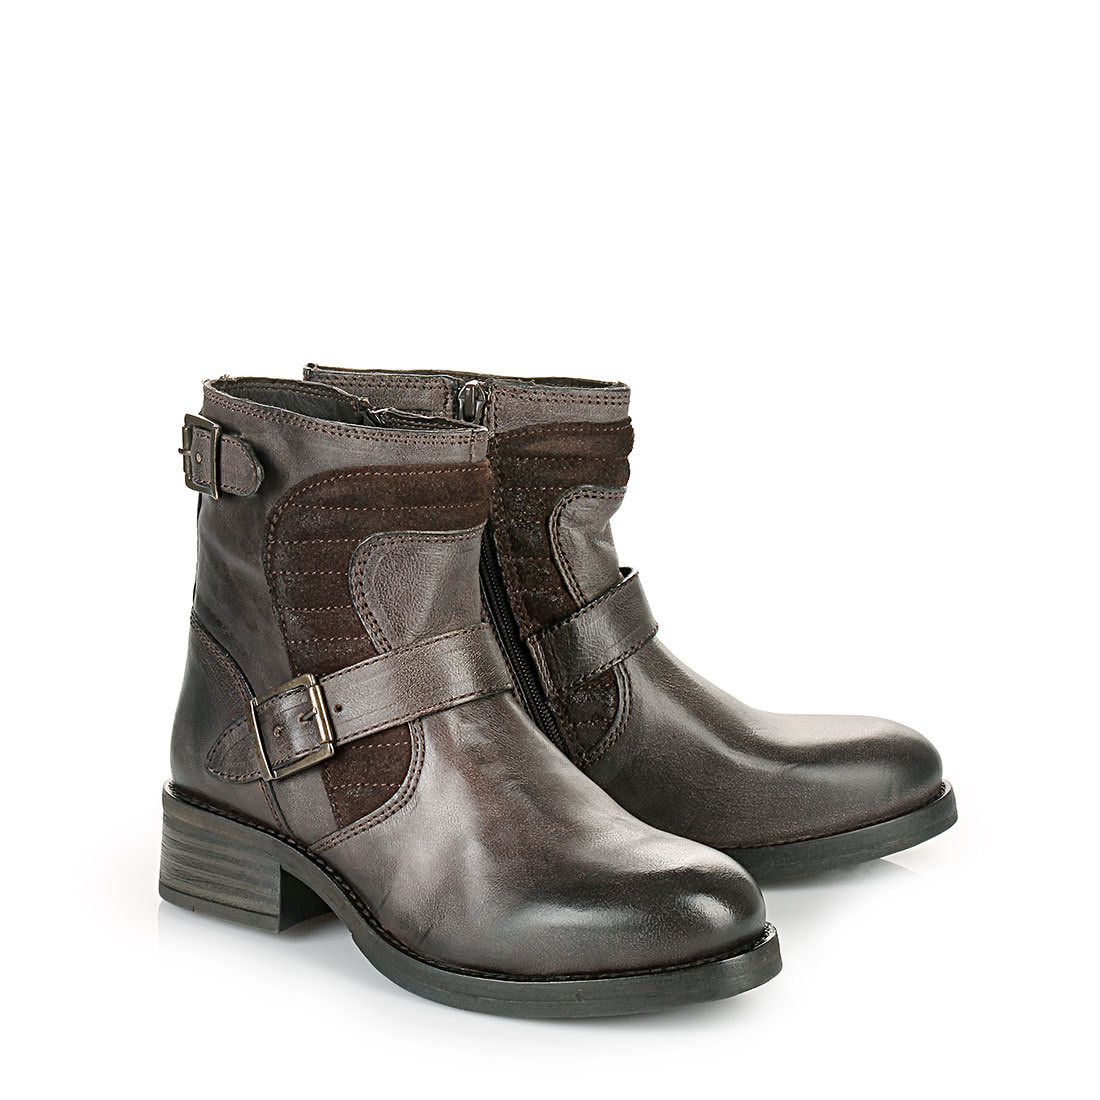 buffalo biker boots in dark brown buy online in buffalo online shop buffalo. Black Bedroom Furniture Sets. Home Design Ideas